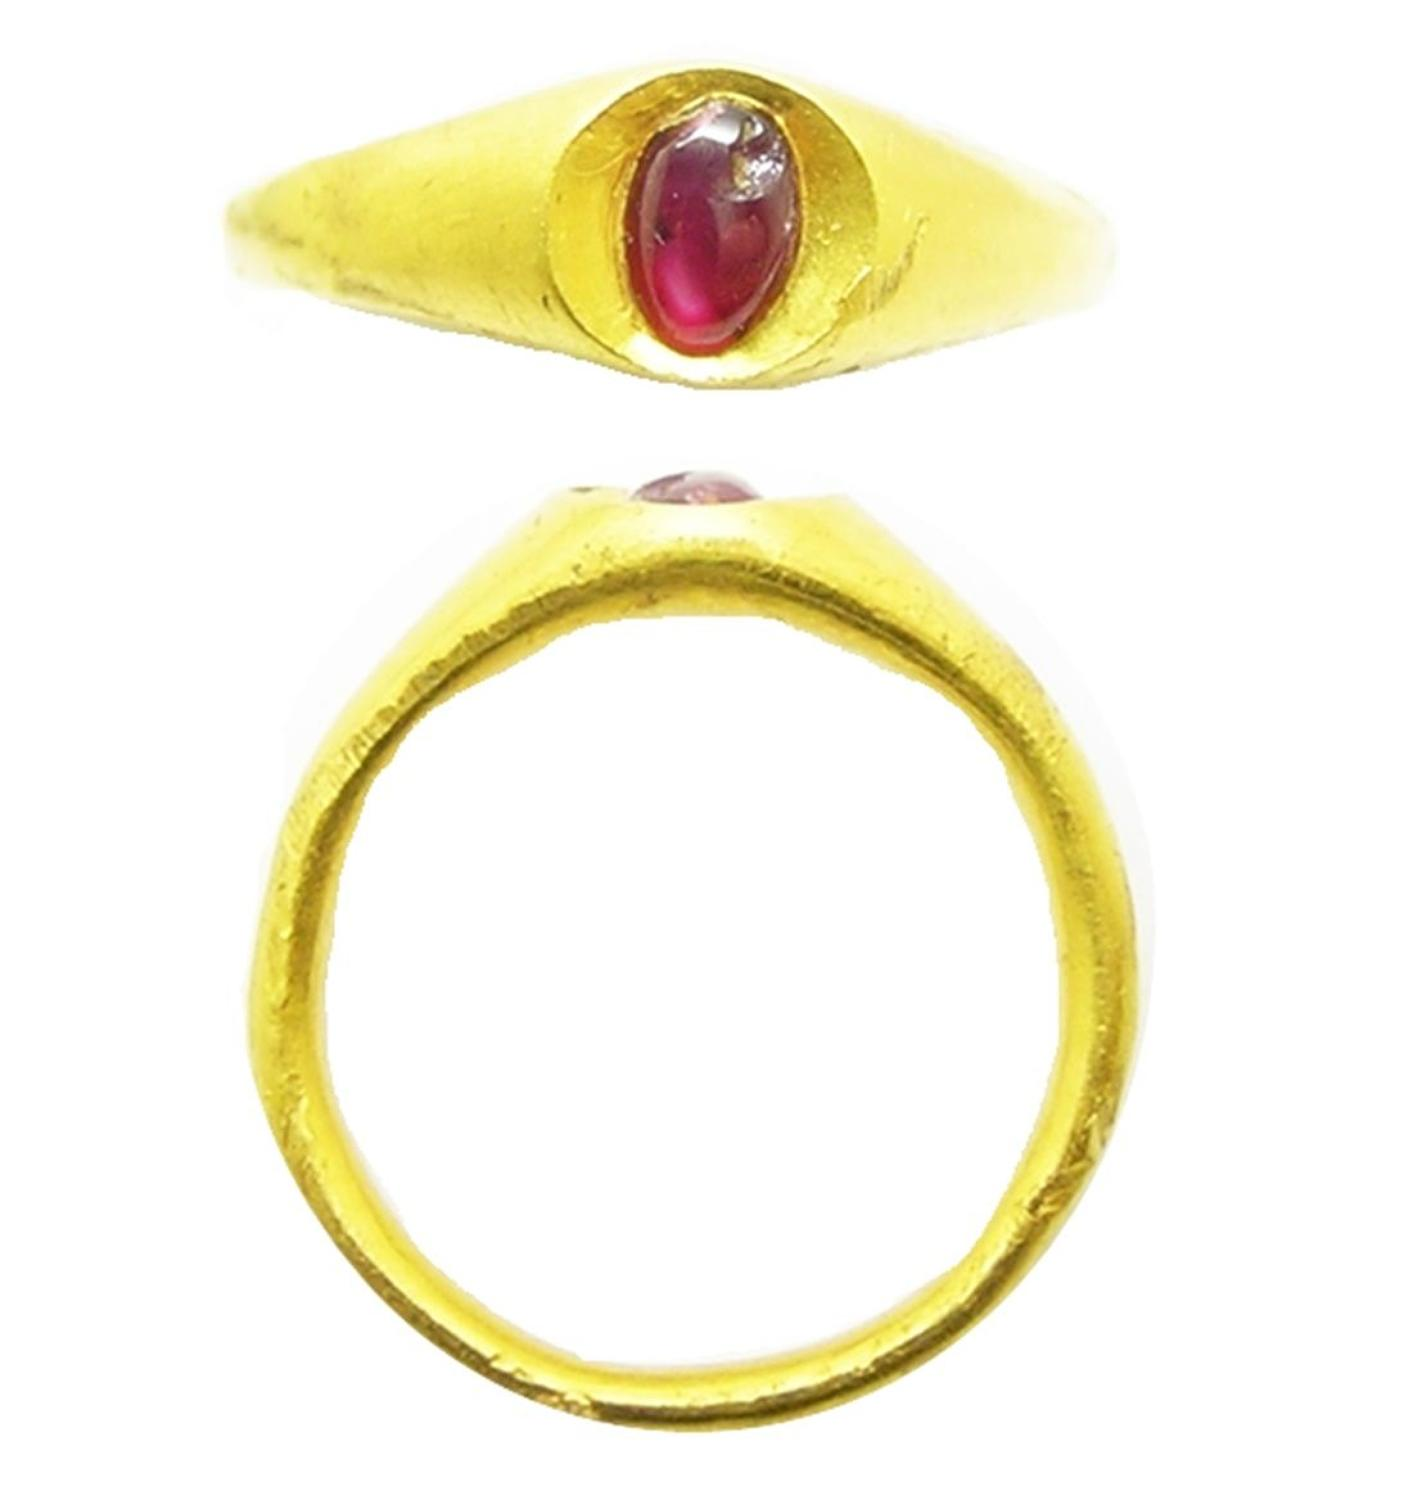 Medieval gold and garnet finger ring